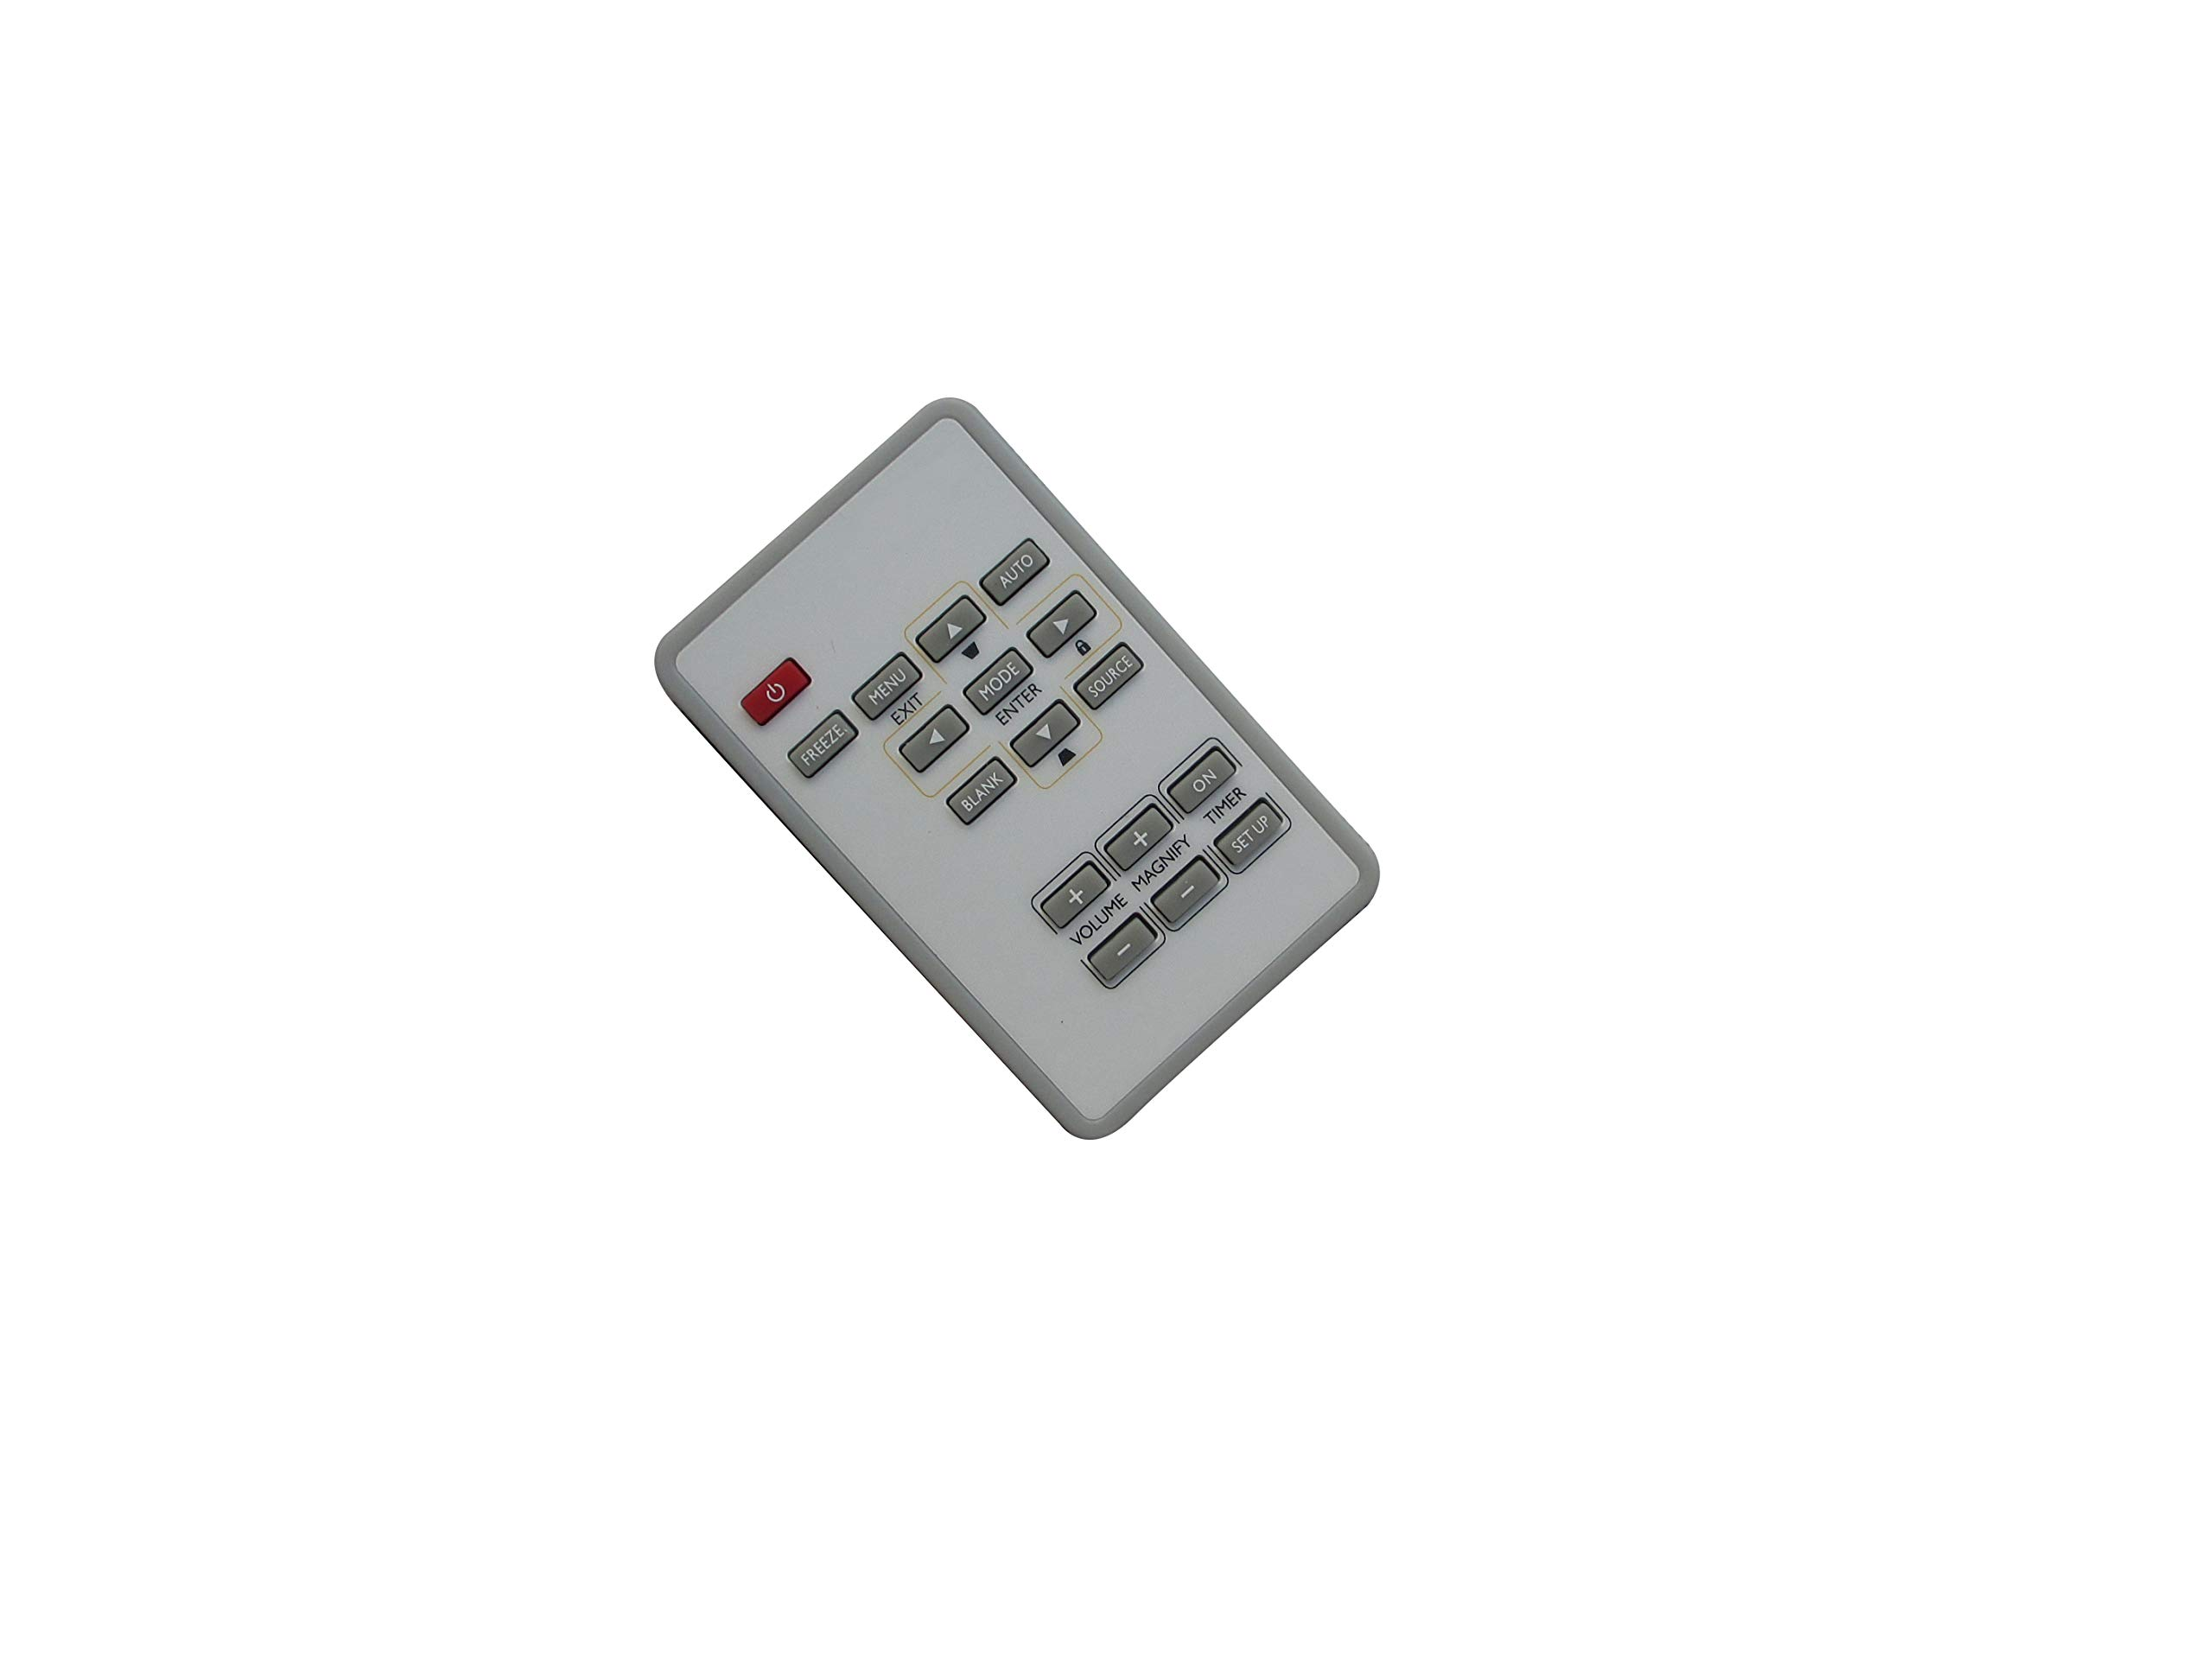 Remote Control for Hitachi CP-DX351 CP-DX250 CP-DX300 HL02961 CP-DH300 CP-DX301 DLP XGA Projector by Easytry123